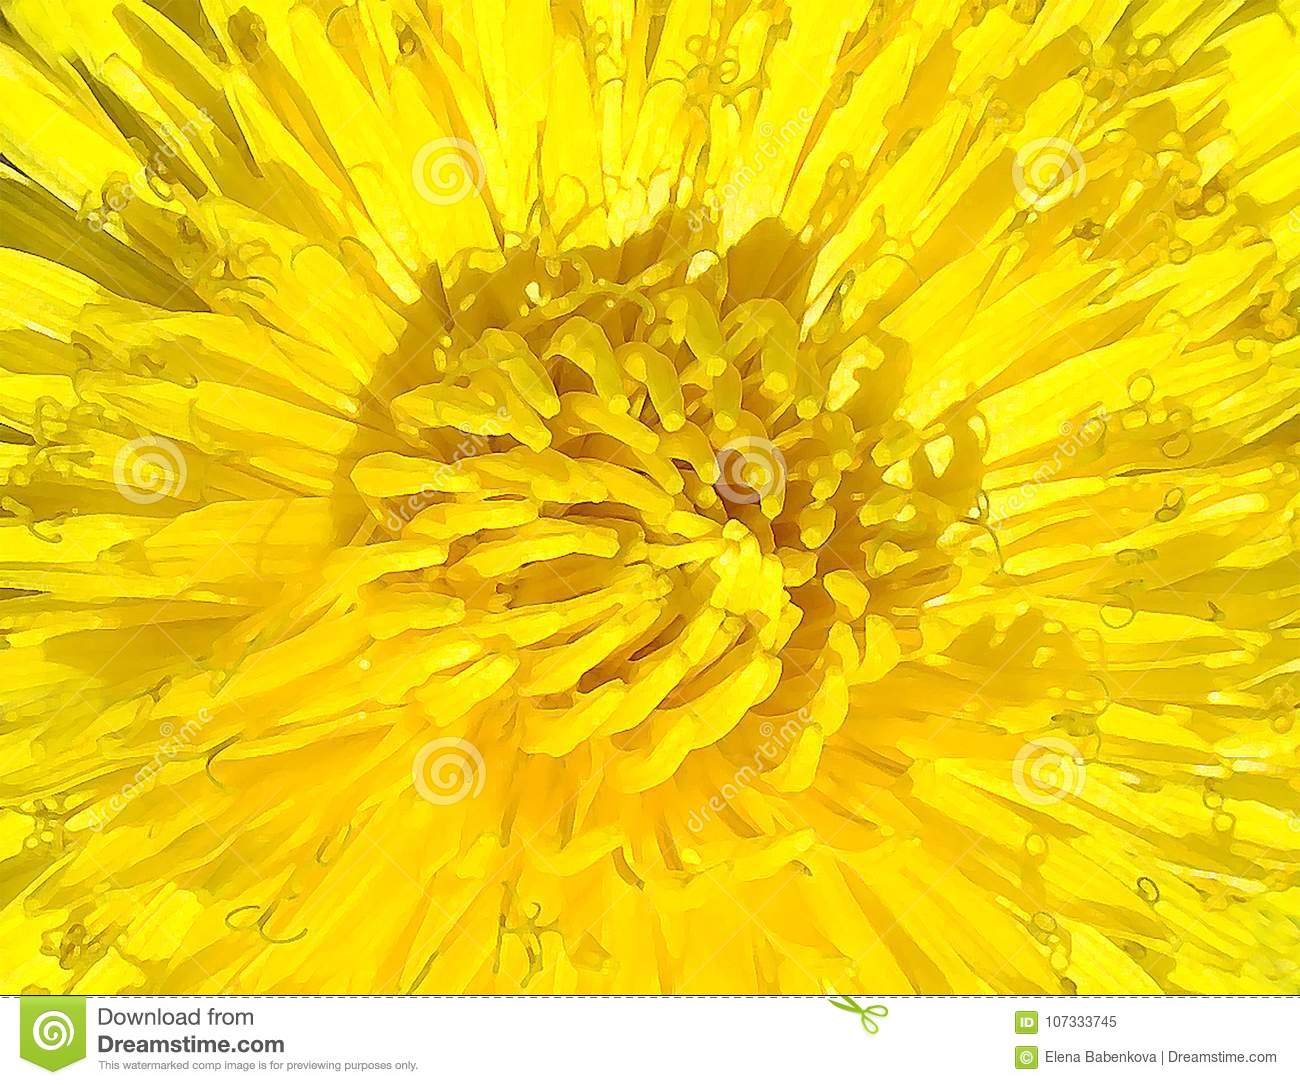 Beautiful Background Image Yellow Flower Of The Dandelion And Its